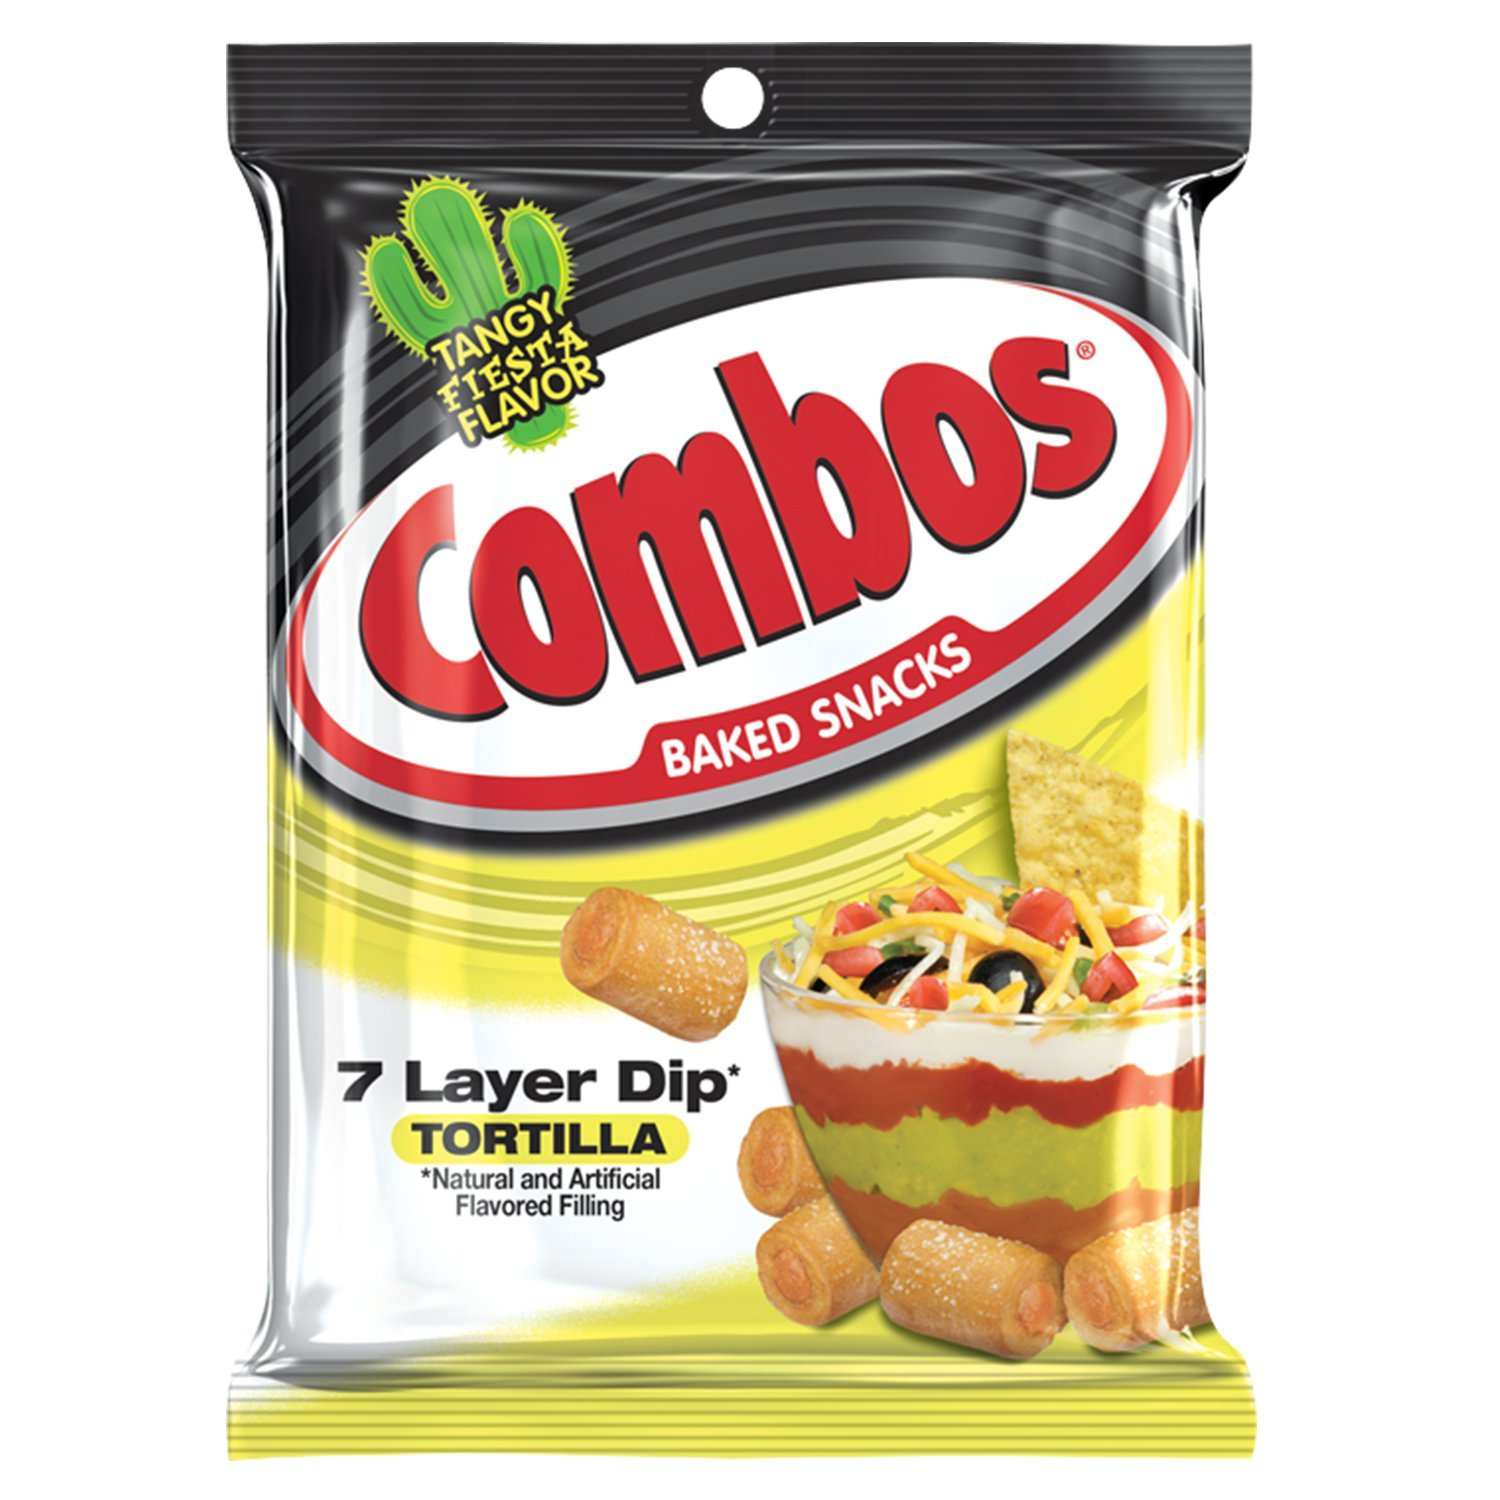 COMBOS 7 Layer Dip Tortilla Baked Snacks 6.3-Ounce Bag (Pack of 12)